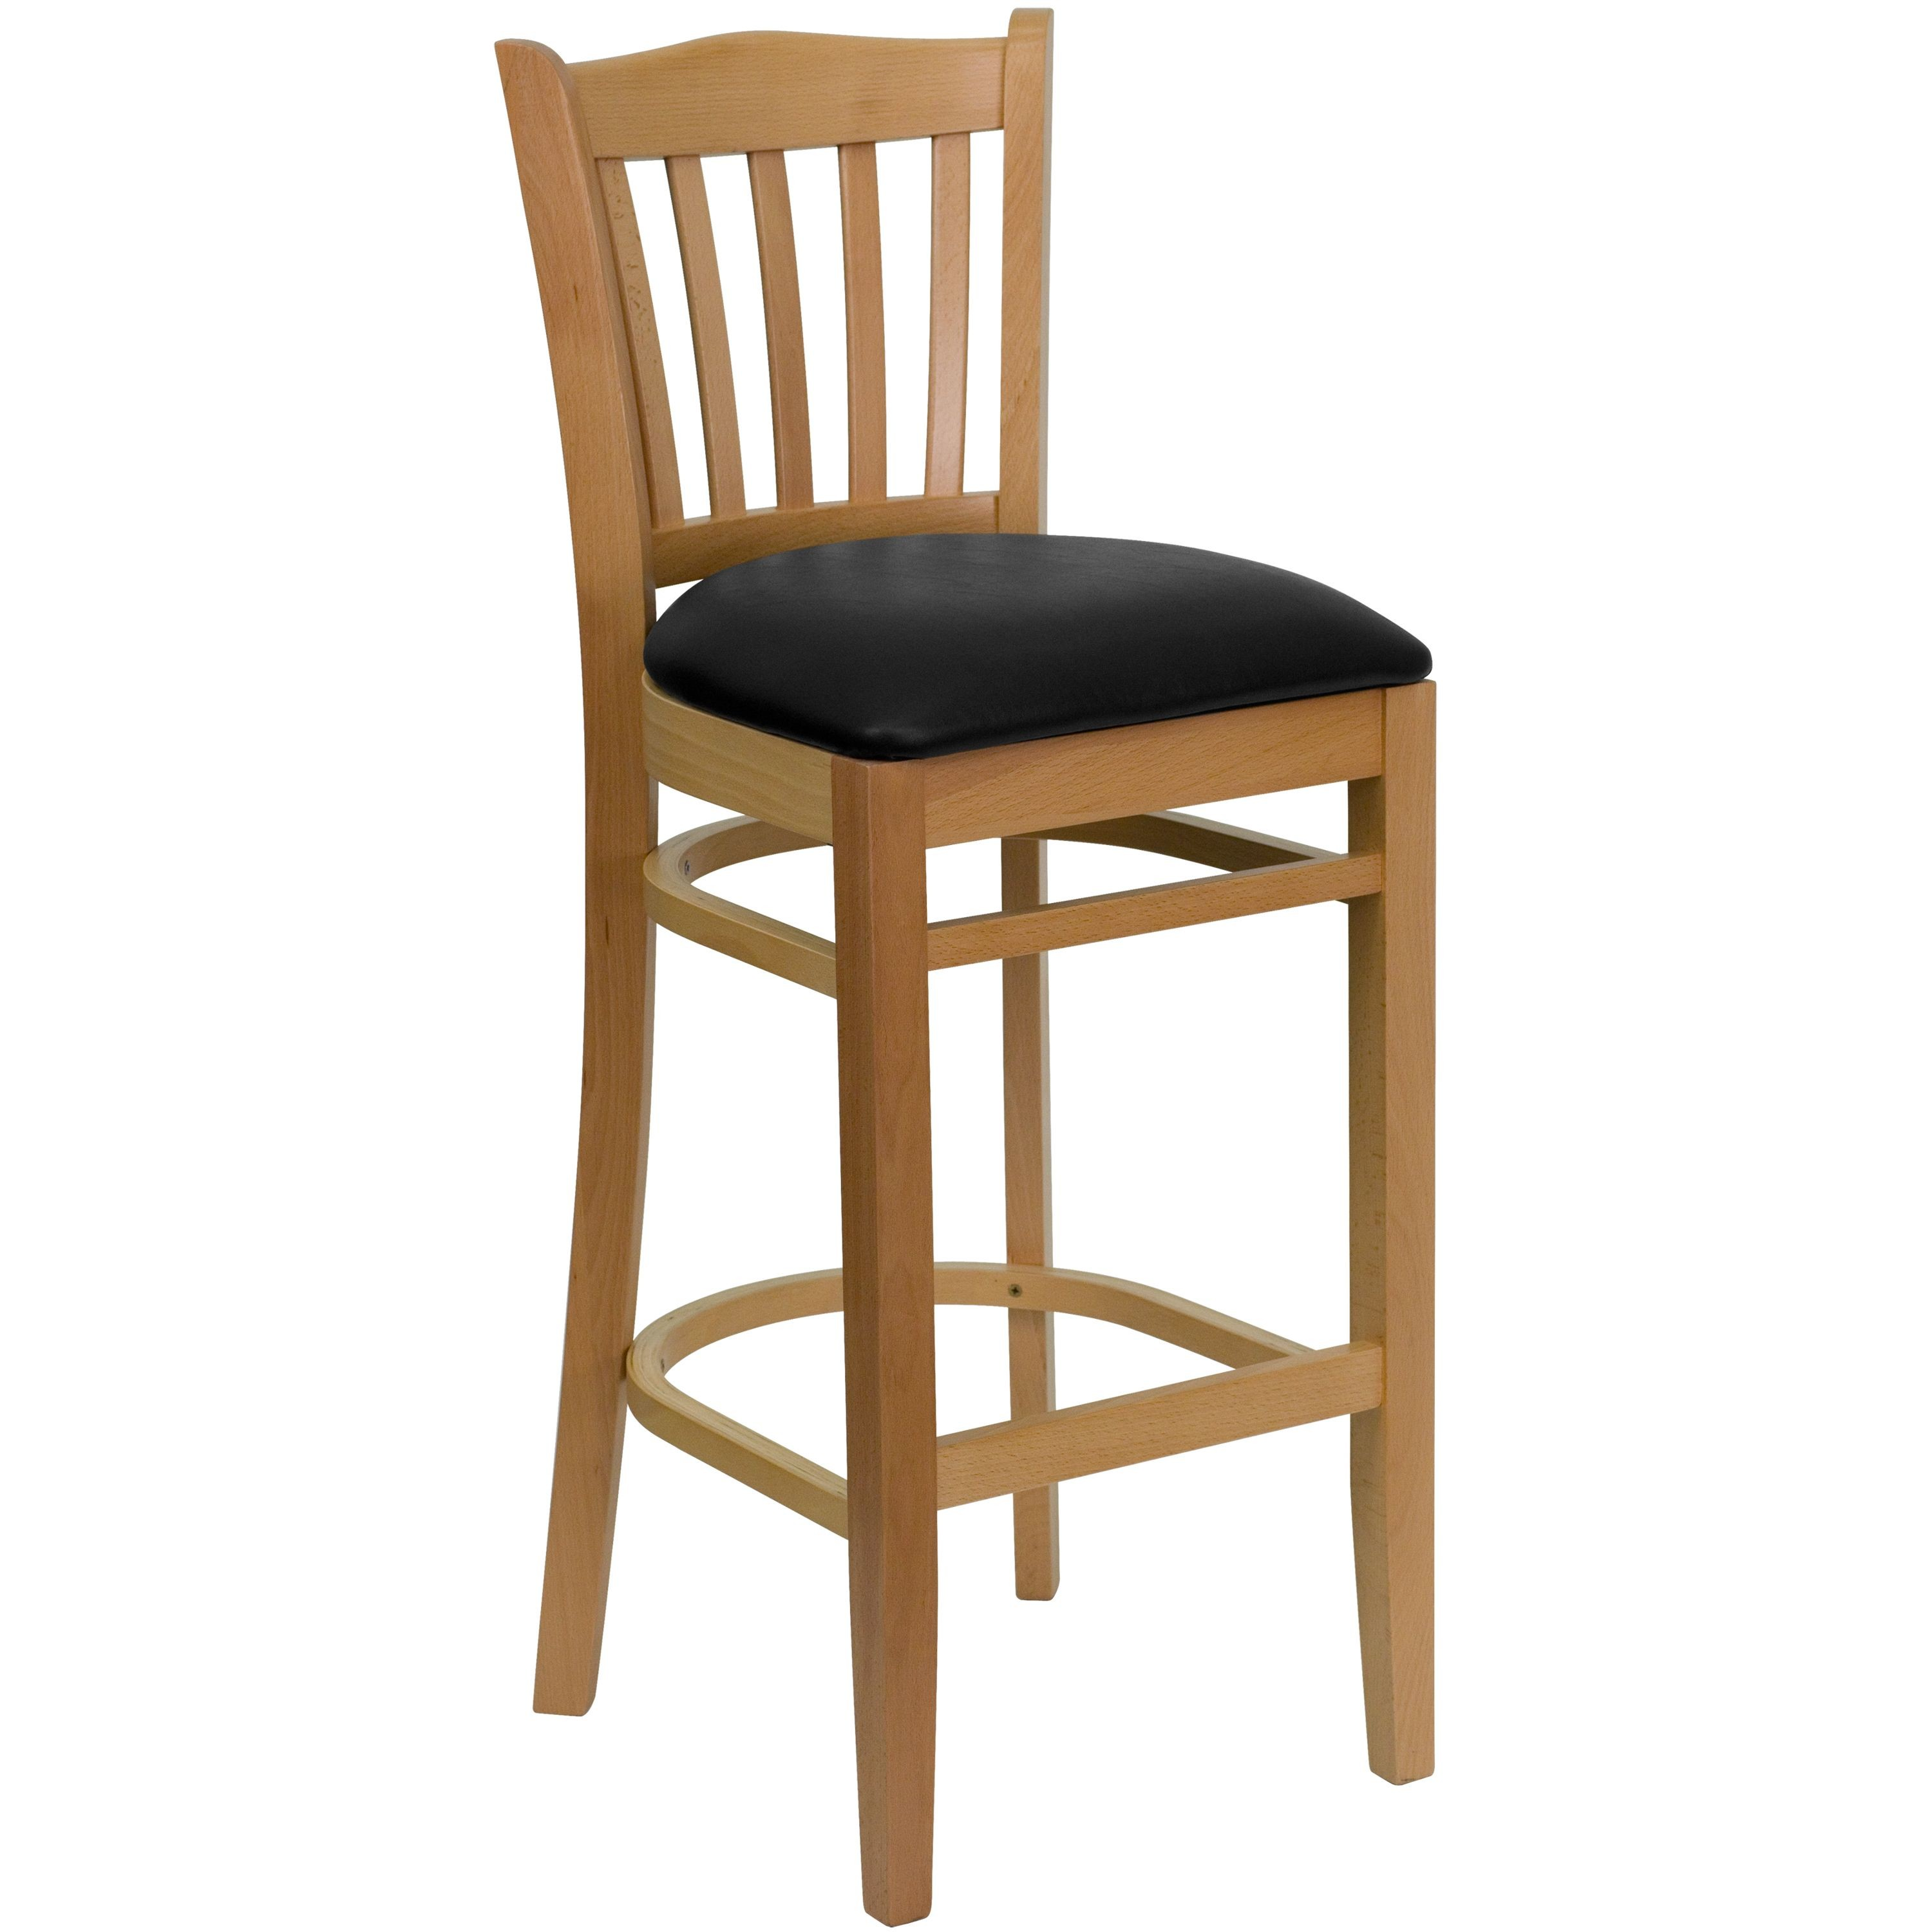 Flash Furniture XU-DGW0008BARVRT-NAT-BLKV-GG Vertical Slat Back Natural Wood Bar Stool with Black Vinyl Seat